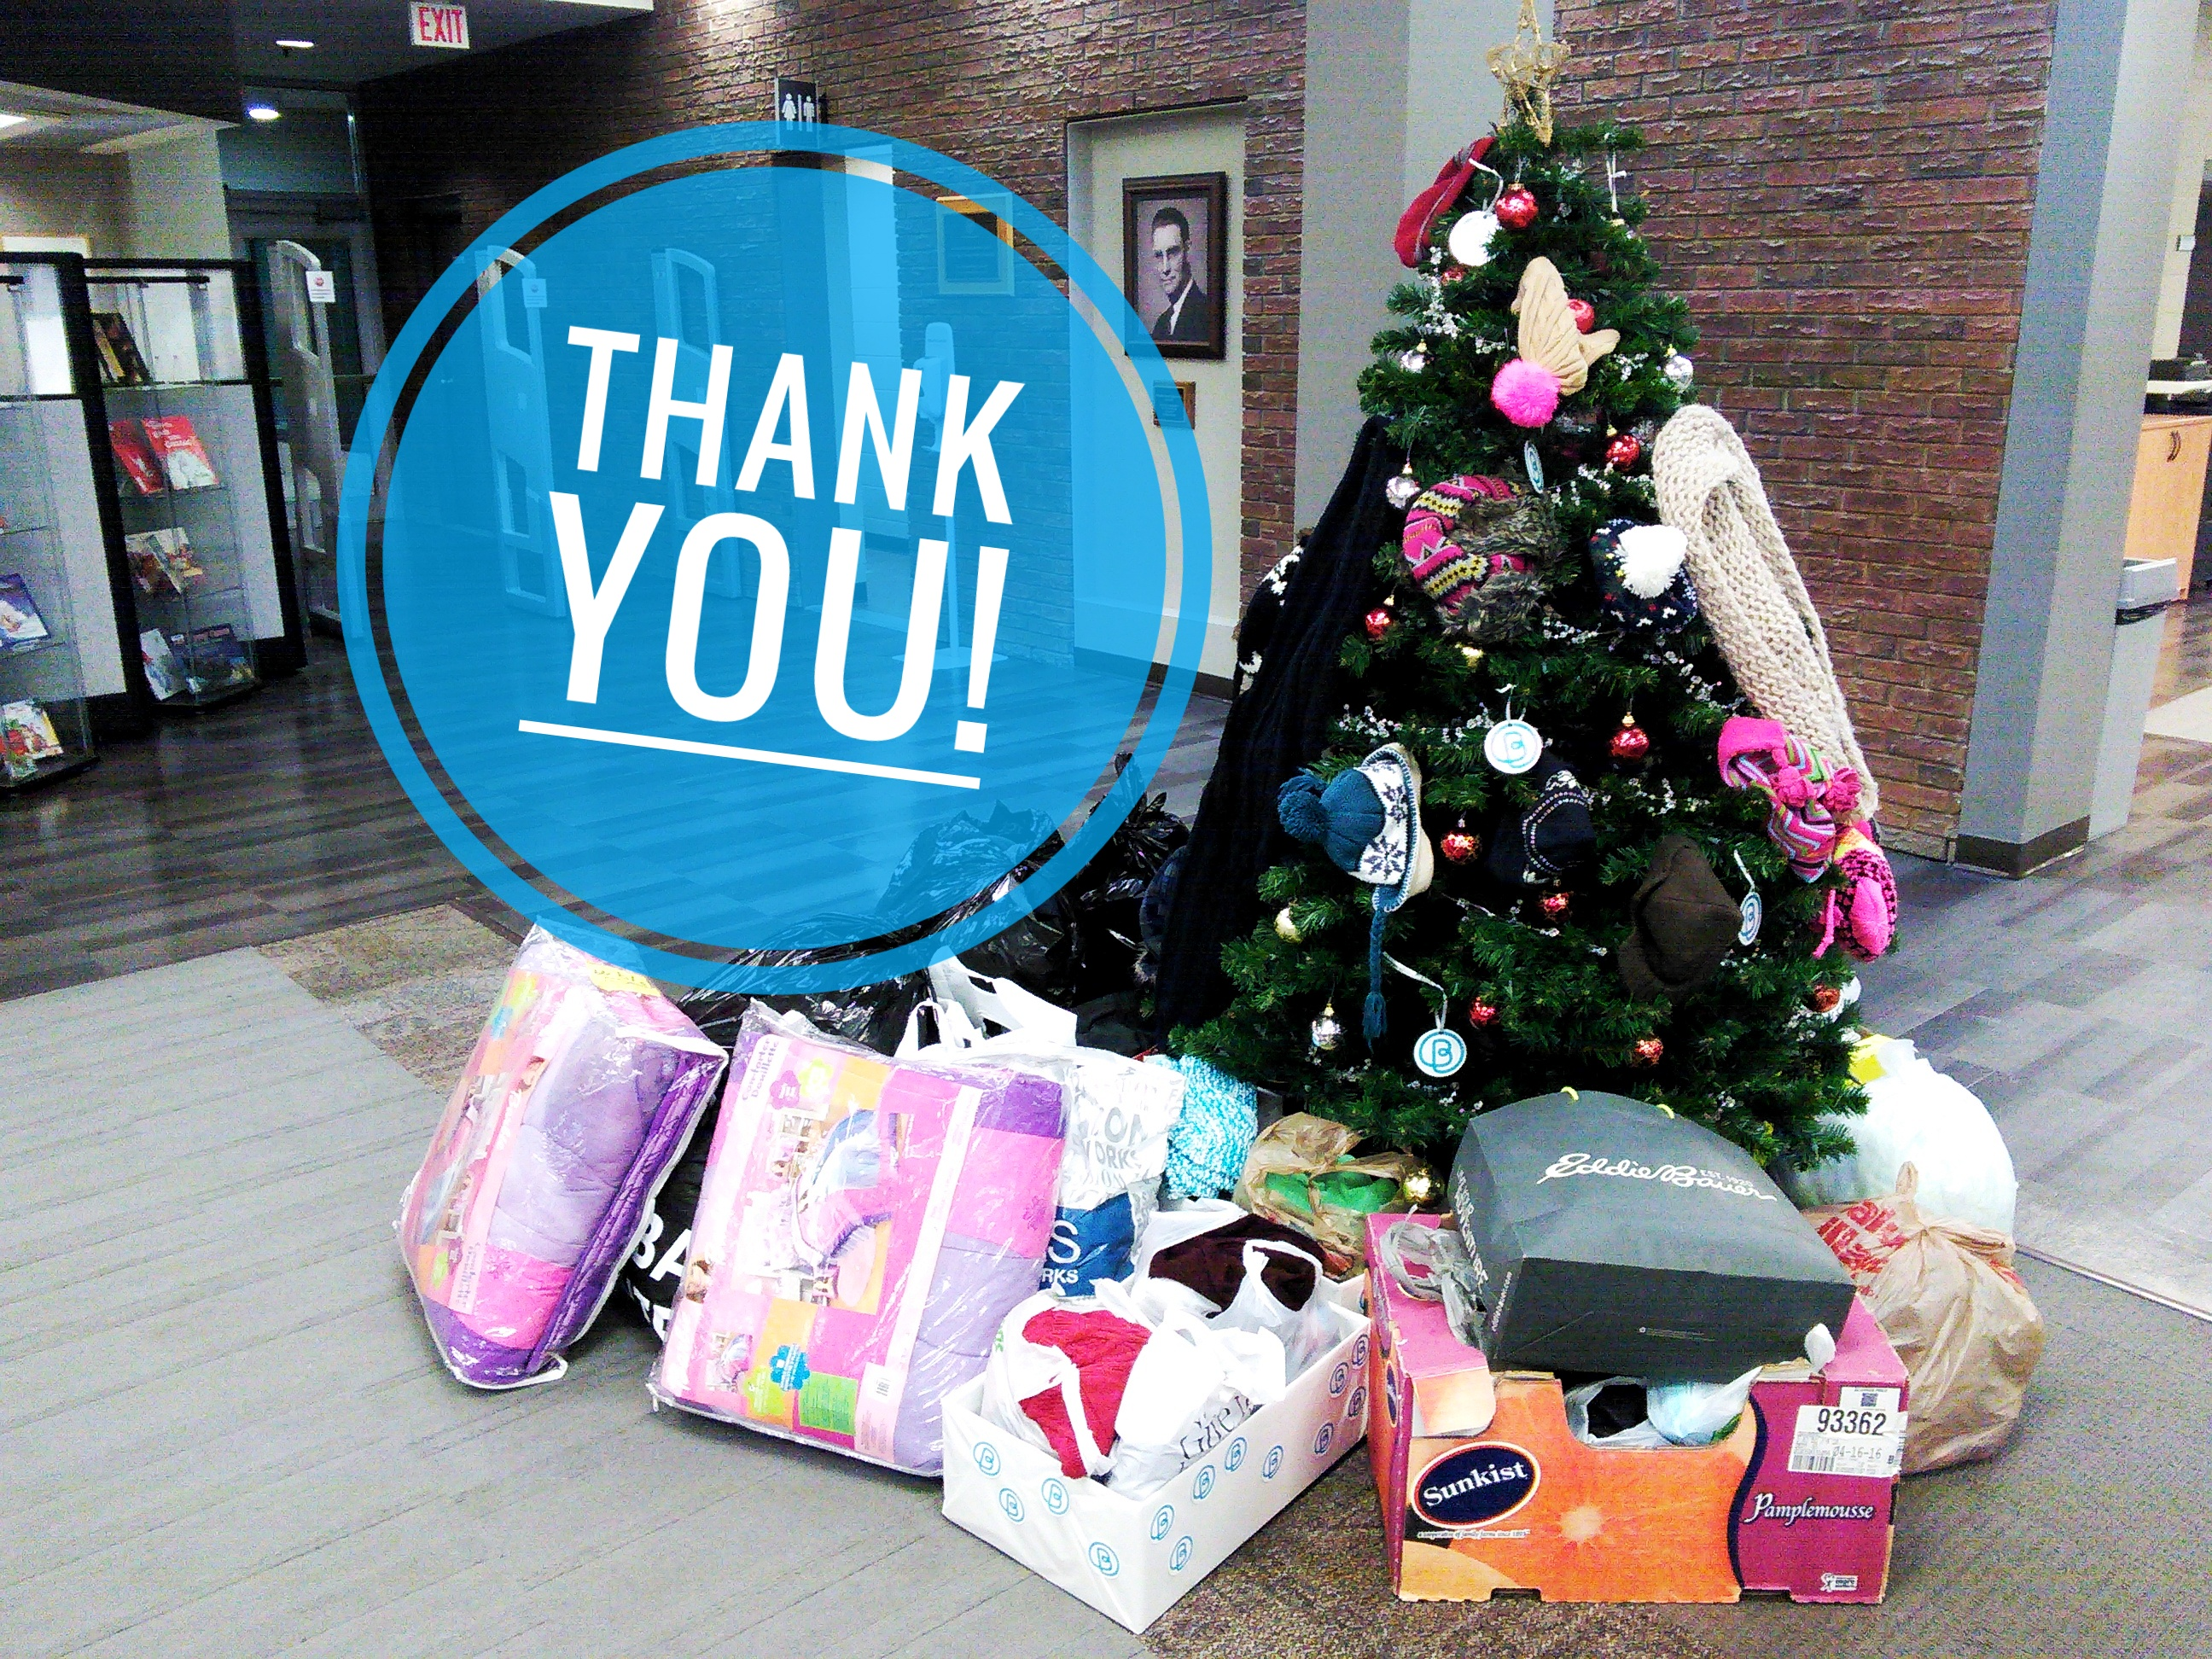 bissell-centre-tree-thank-you